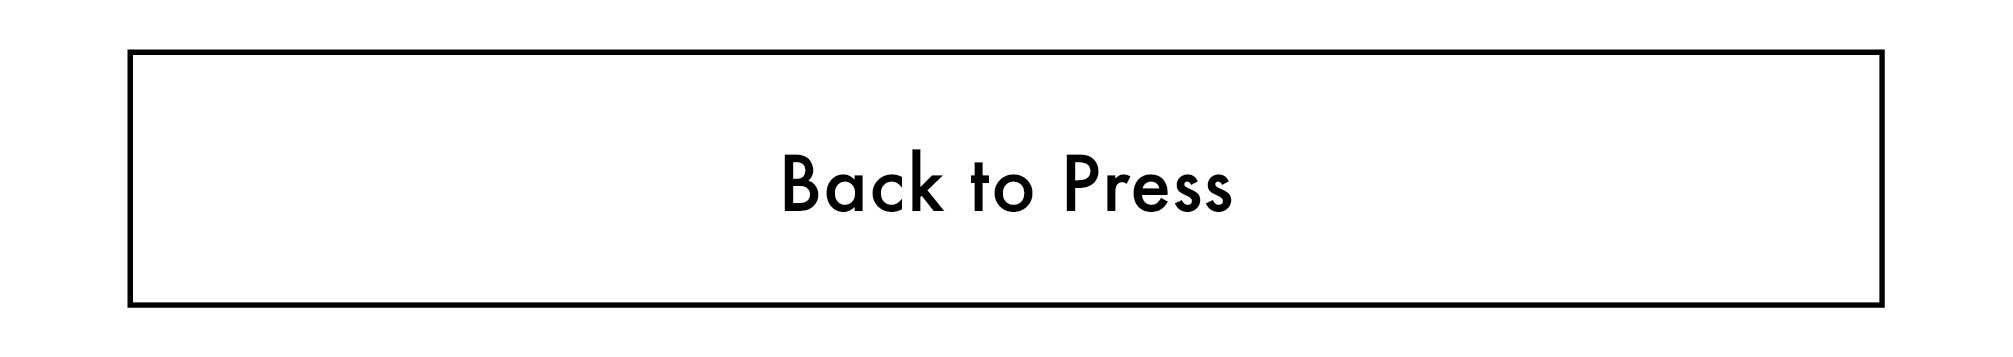 Back to Press